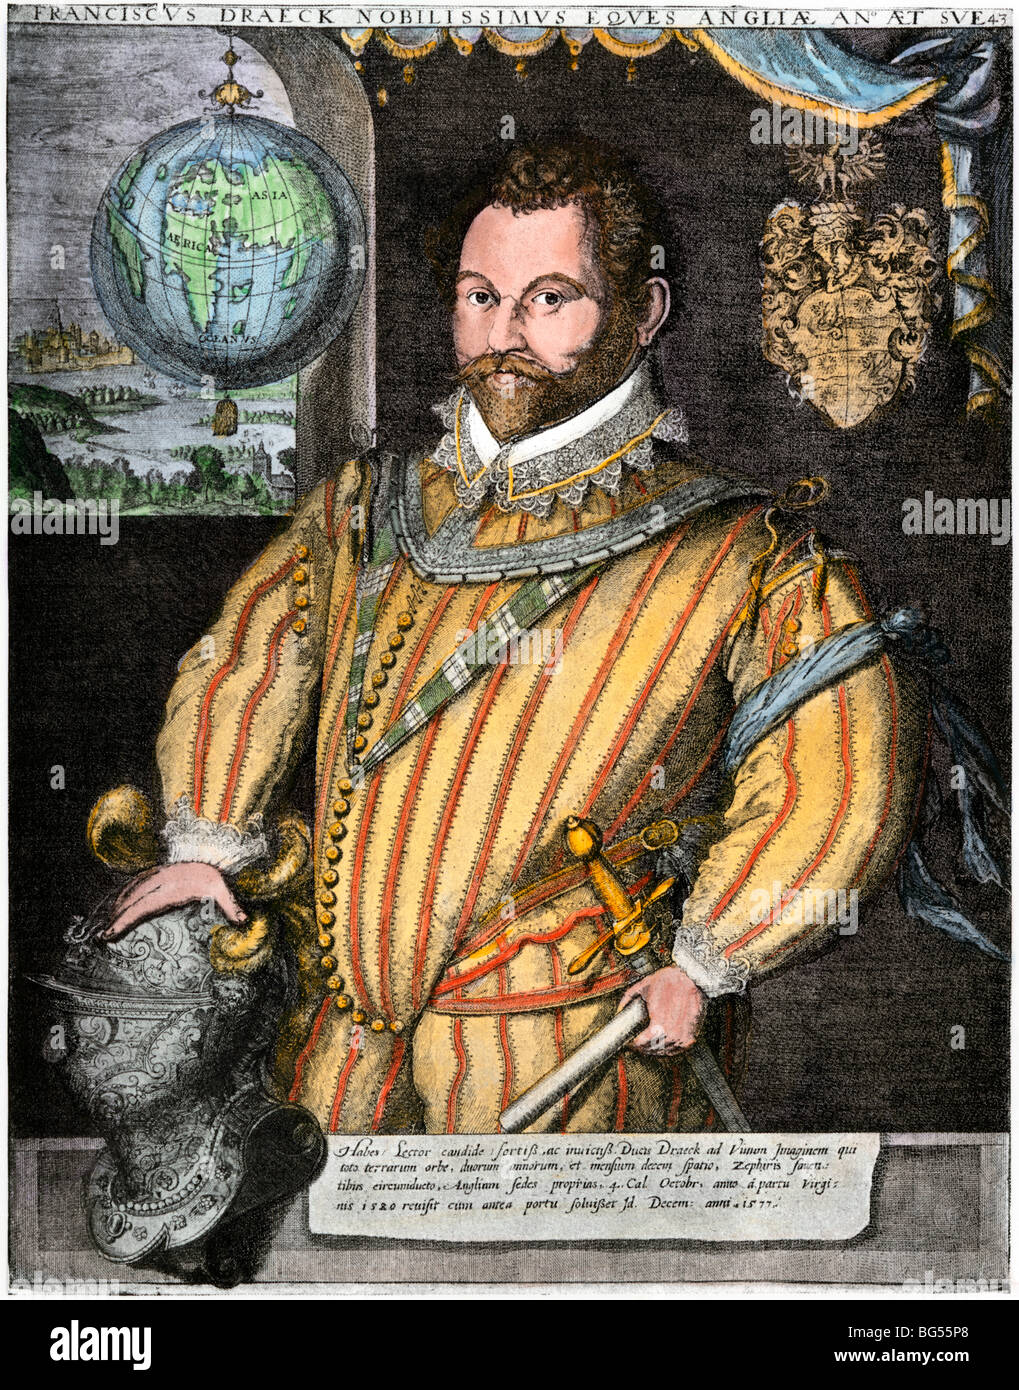 Admiral Francis Drake, first Englishman to sail around the world. Hand-colored woodcut - Stock Image